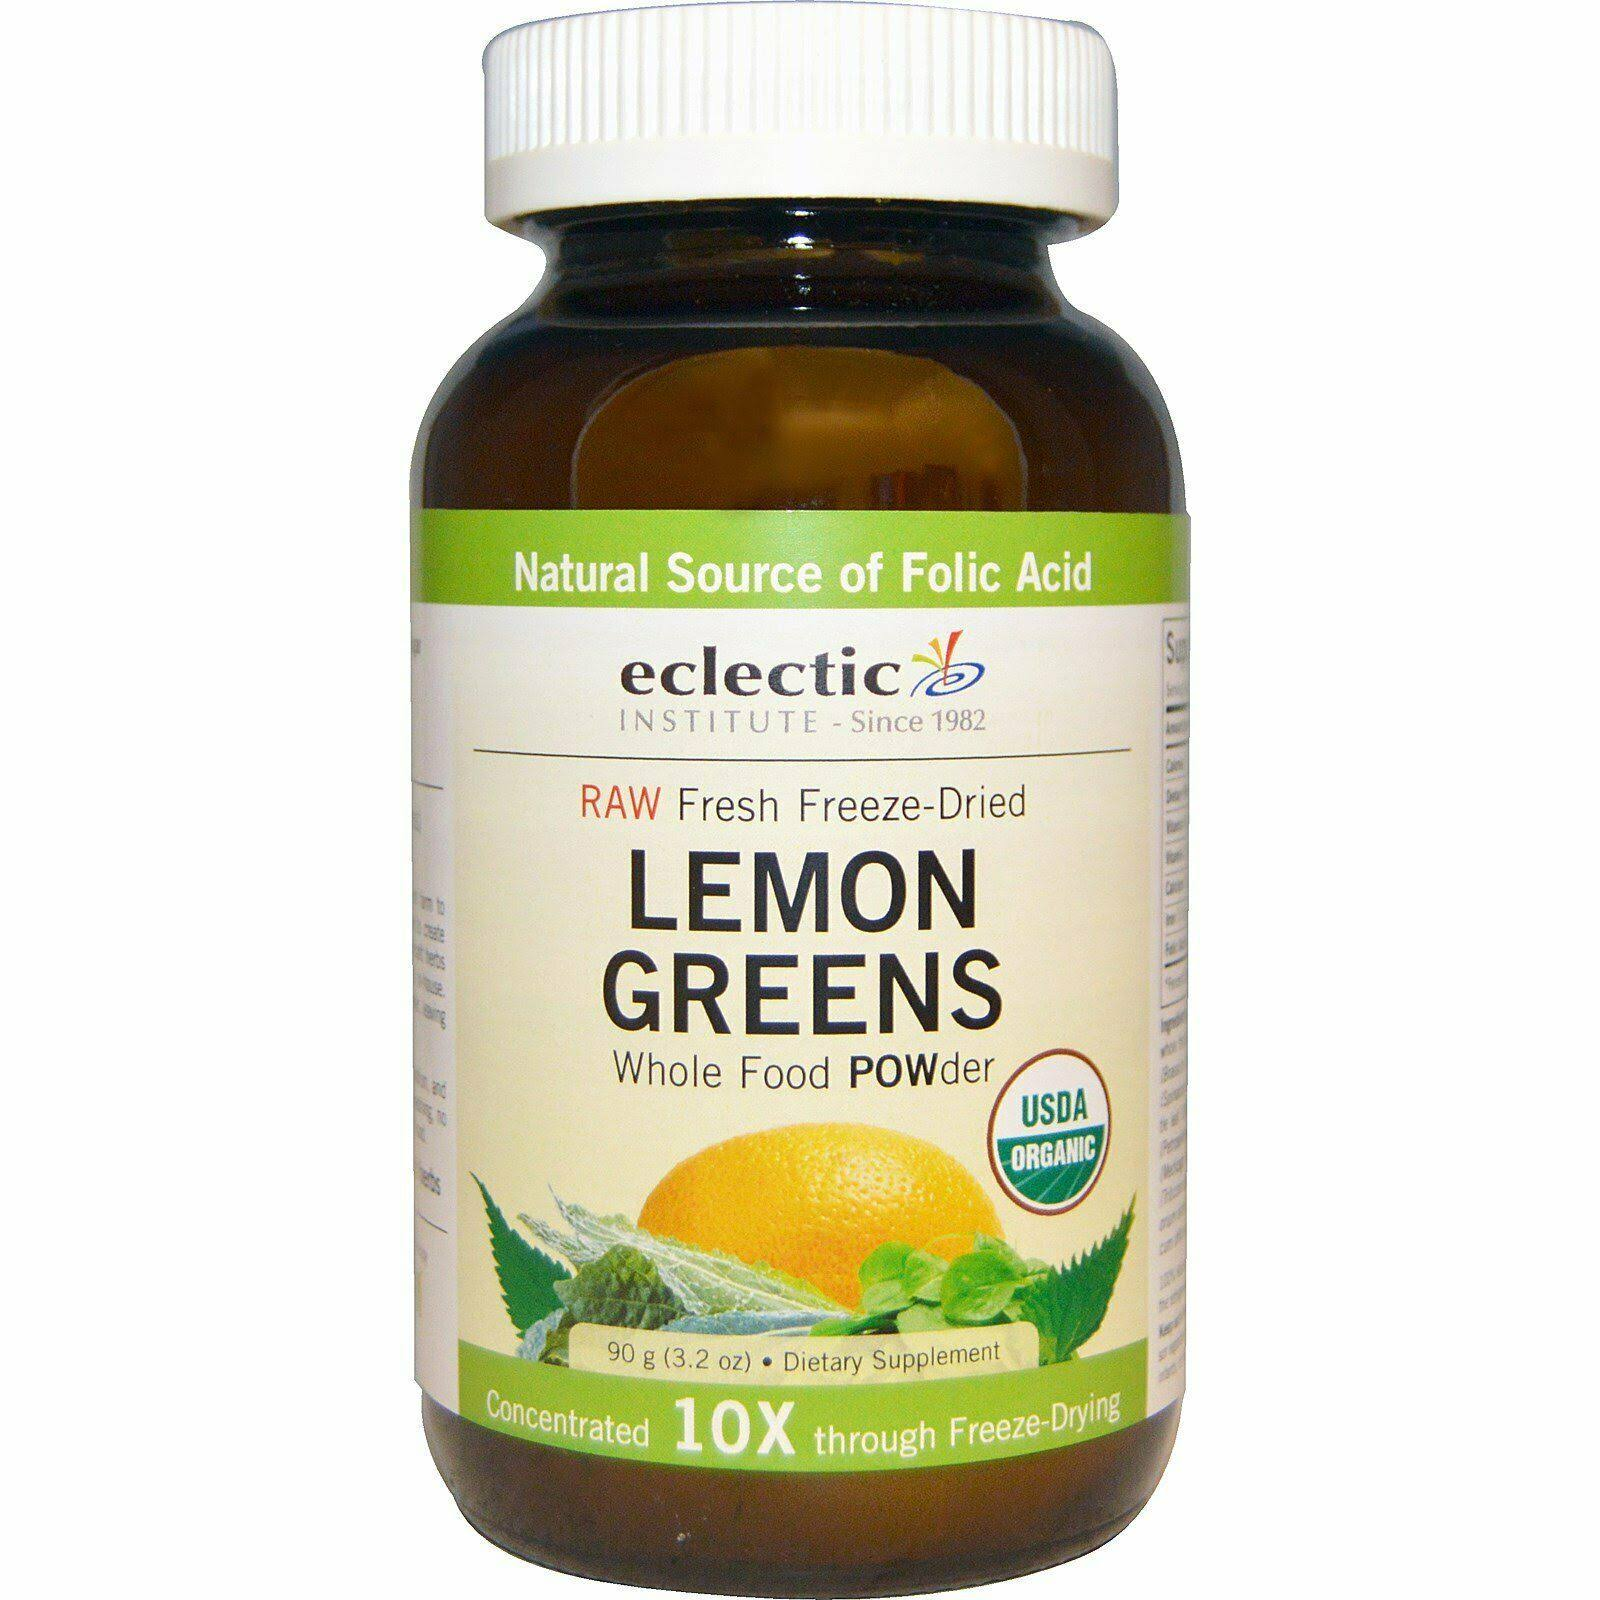 Eclectic Institute Lemon Greens Whole Food Powder - 3.2oz